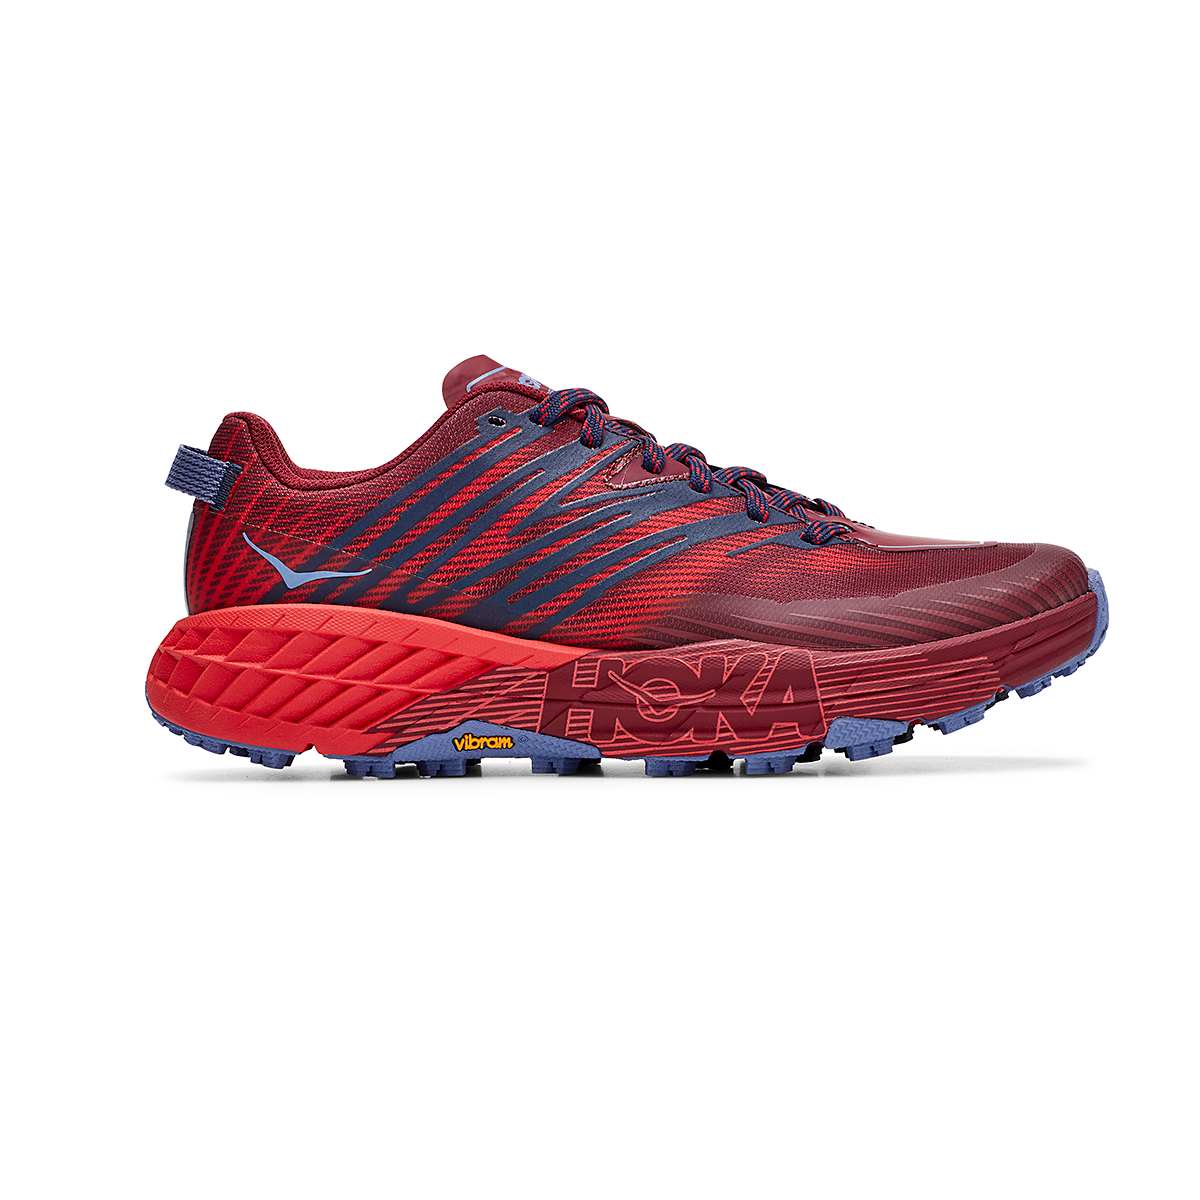 Women's Hoka One One Speedgoat 4 Trail Running Shoe - Color: Cordovan/High Risk Red - Size: 5 - Width: Regular, Cordovan/High Risk Red, large, image 1